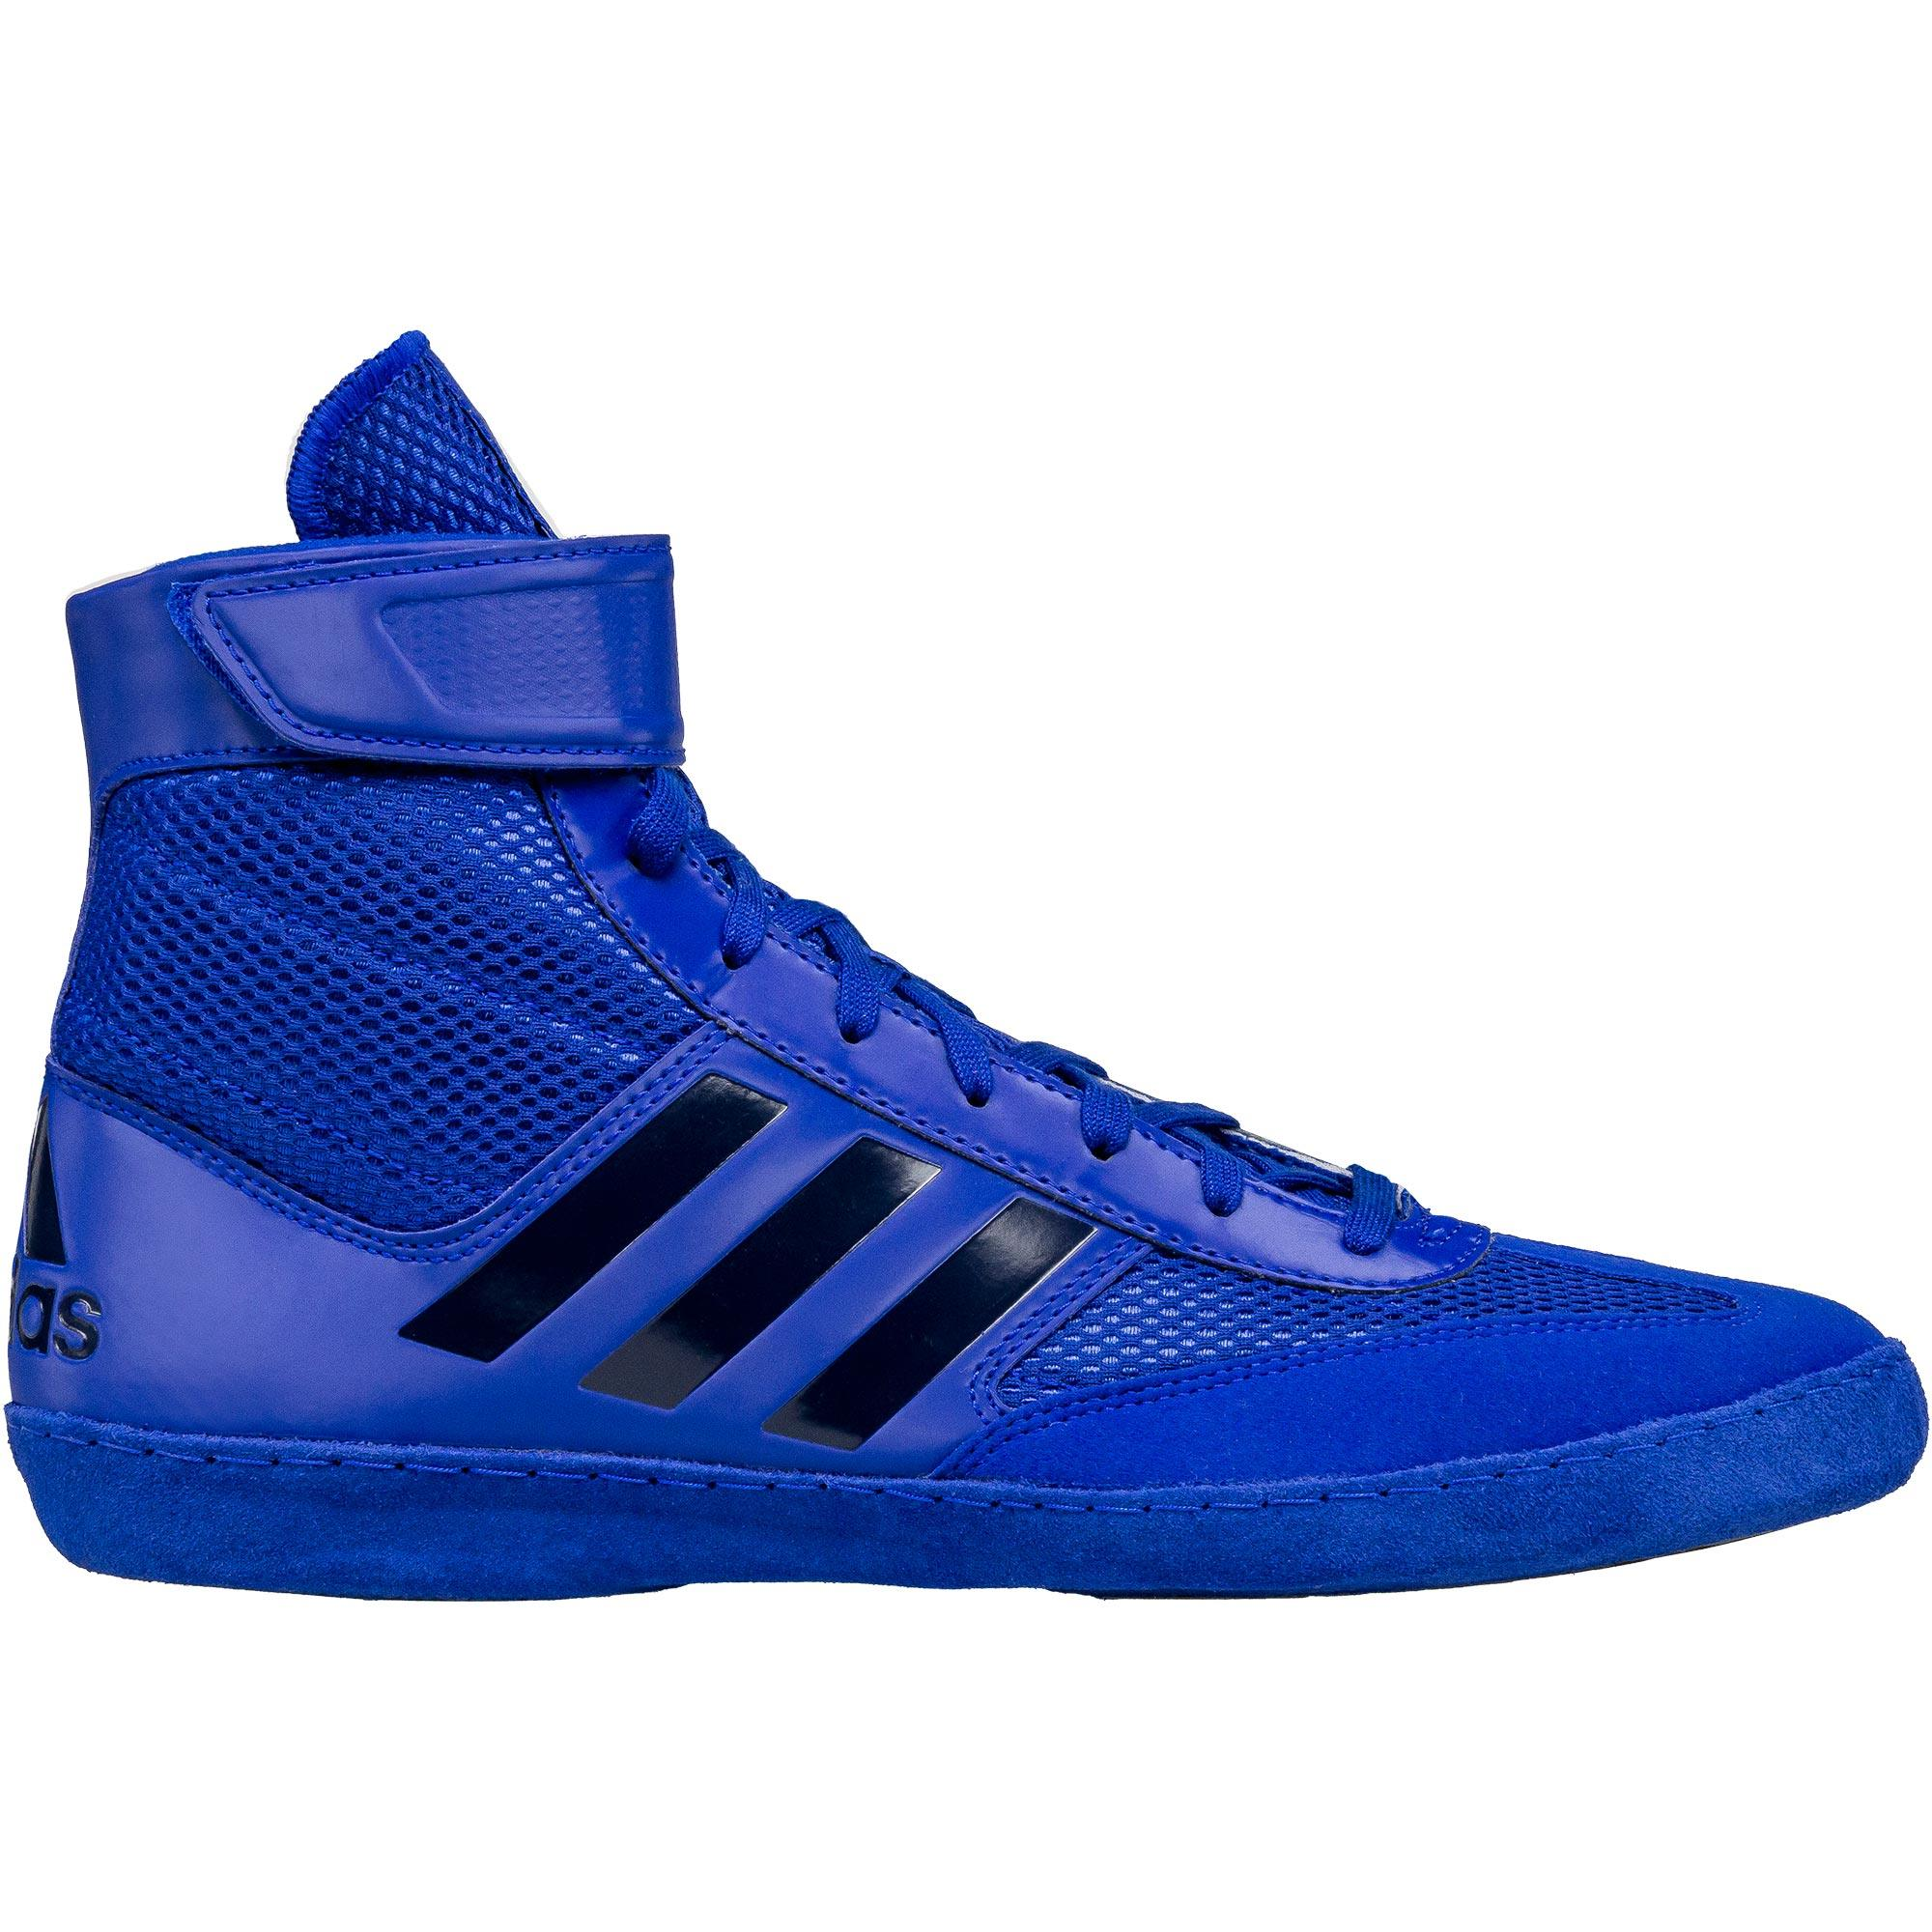 best service 48408 10812 ... Comba Speed 5 Royal Blue Royal Blue insideAdidas Comba Speed 5 Royal  Blue Royal Blue frontAdidas Comba Speed 5 Royal Blue Royal Blue backAdidas  Comba ...